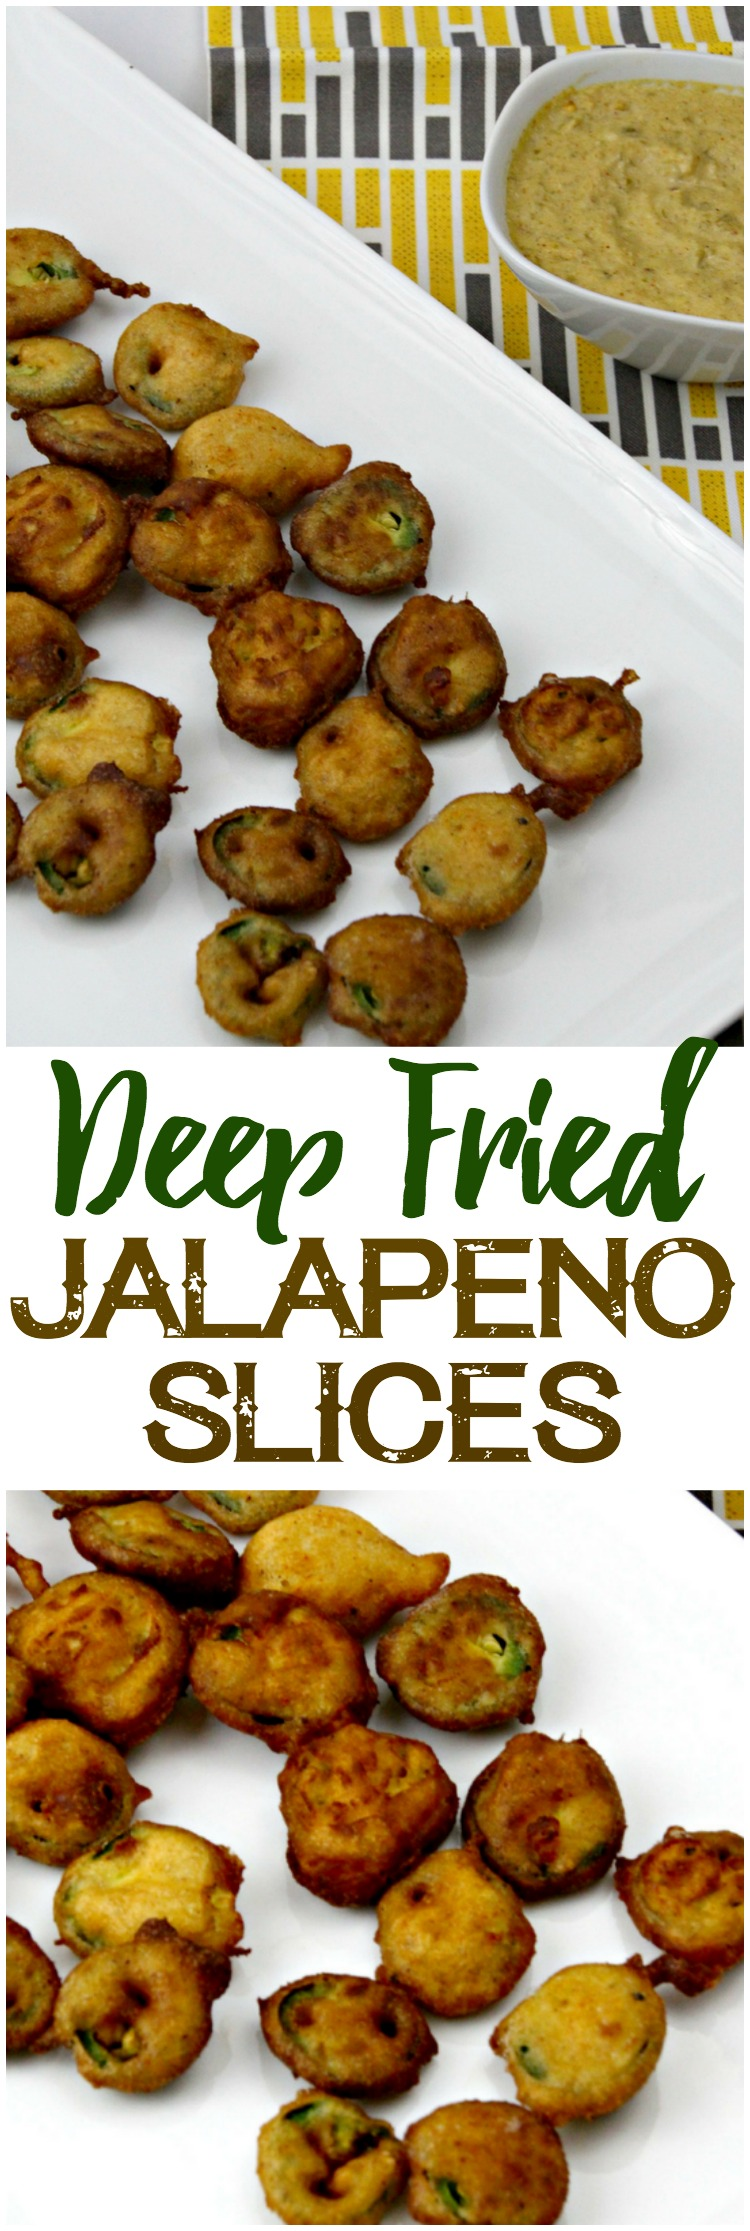 These deep fried jalapeño slices are surprisingly easy, yet sinfully addictive! Serve them up at your next party alongside melted cheese sauce. #jalapenos #appetizer #snack